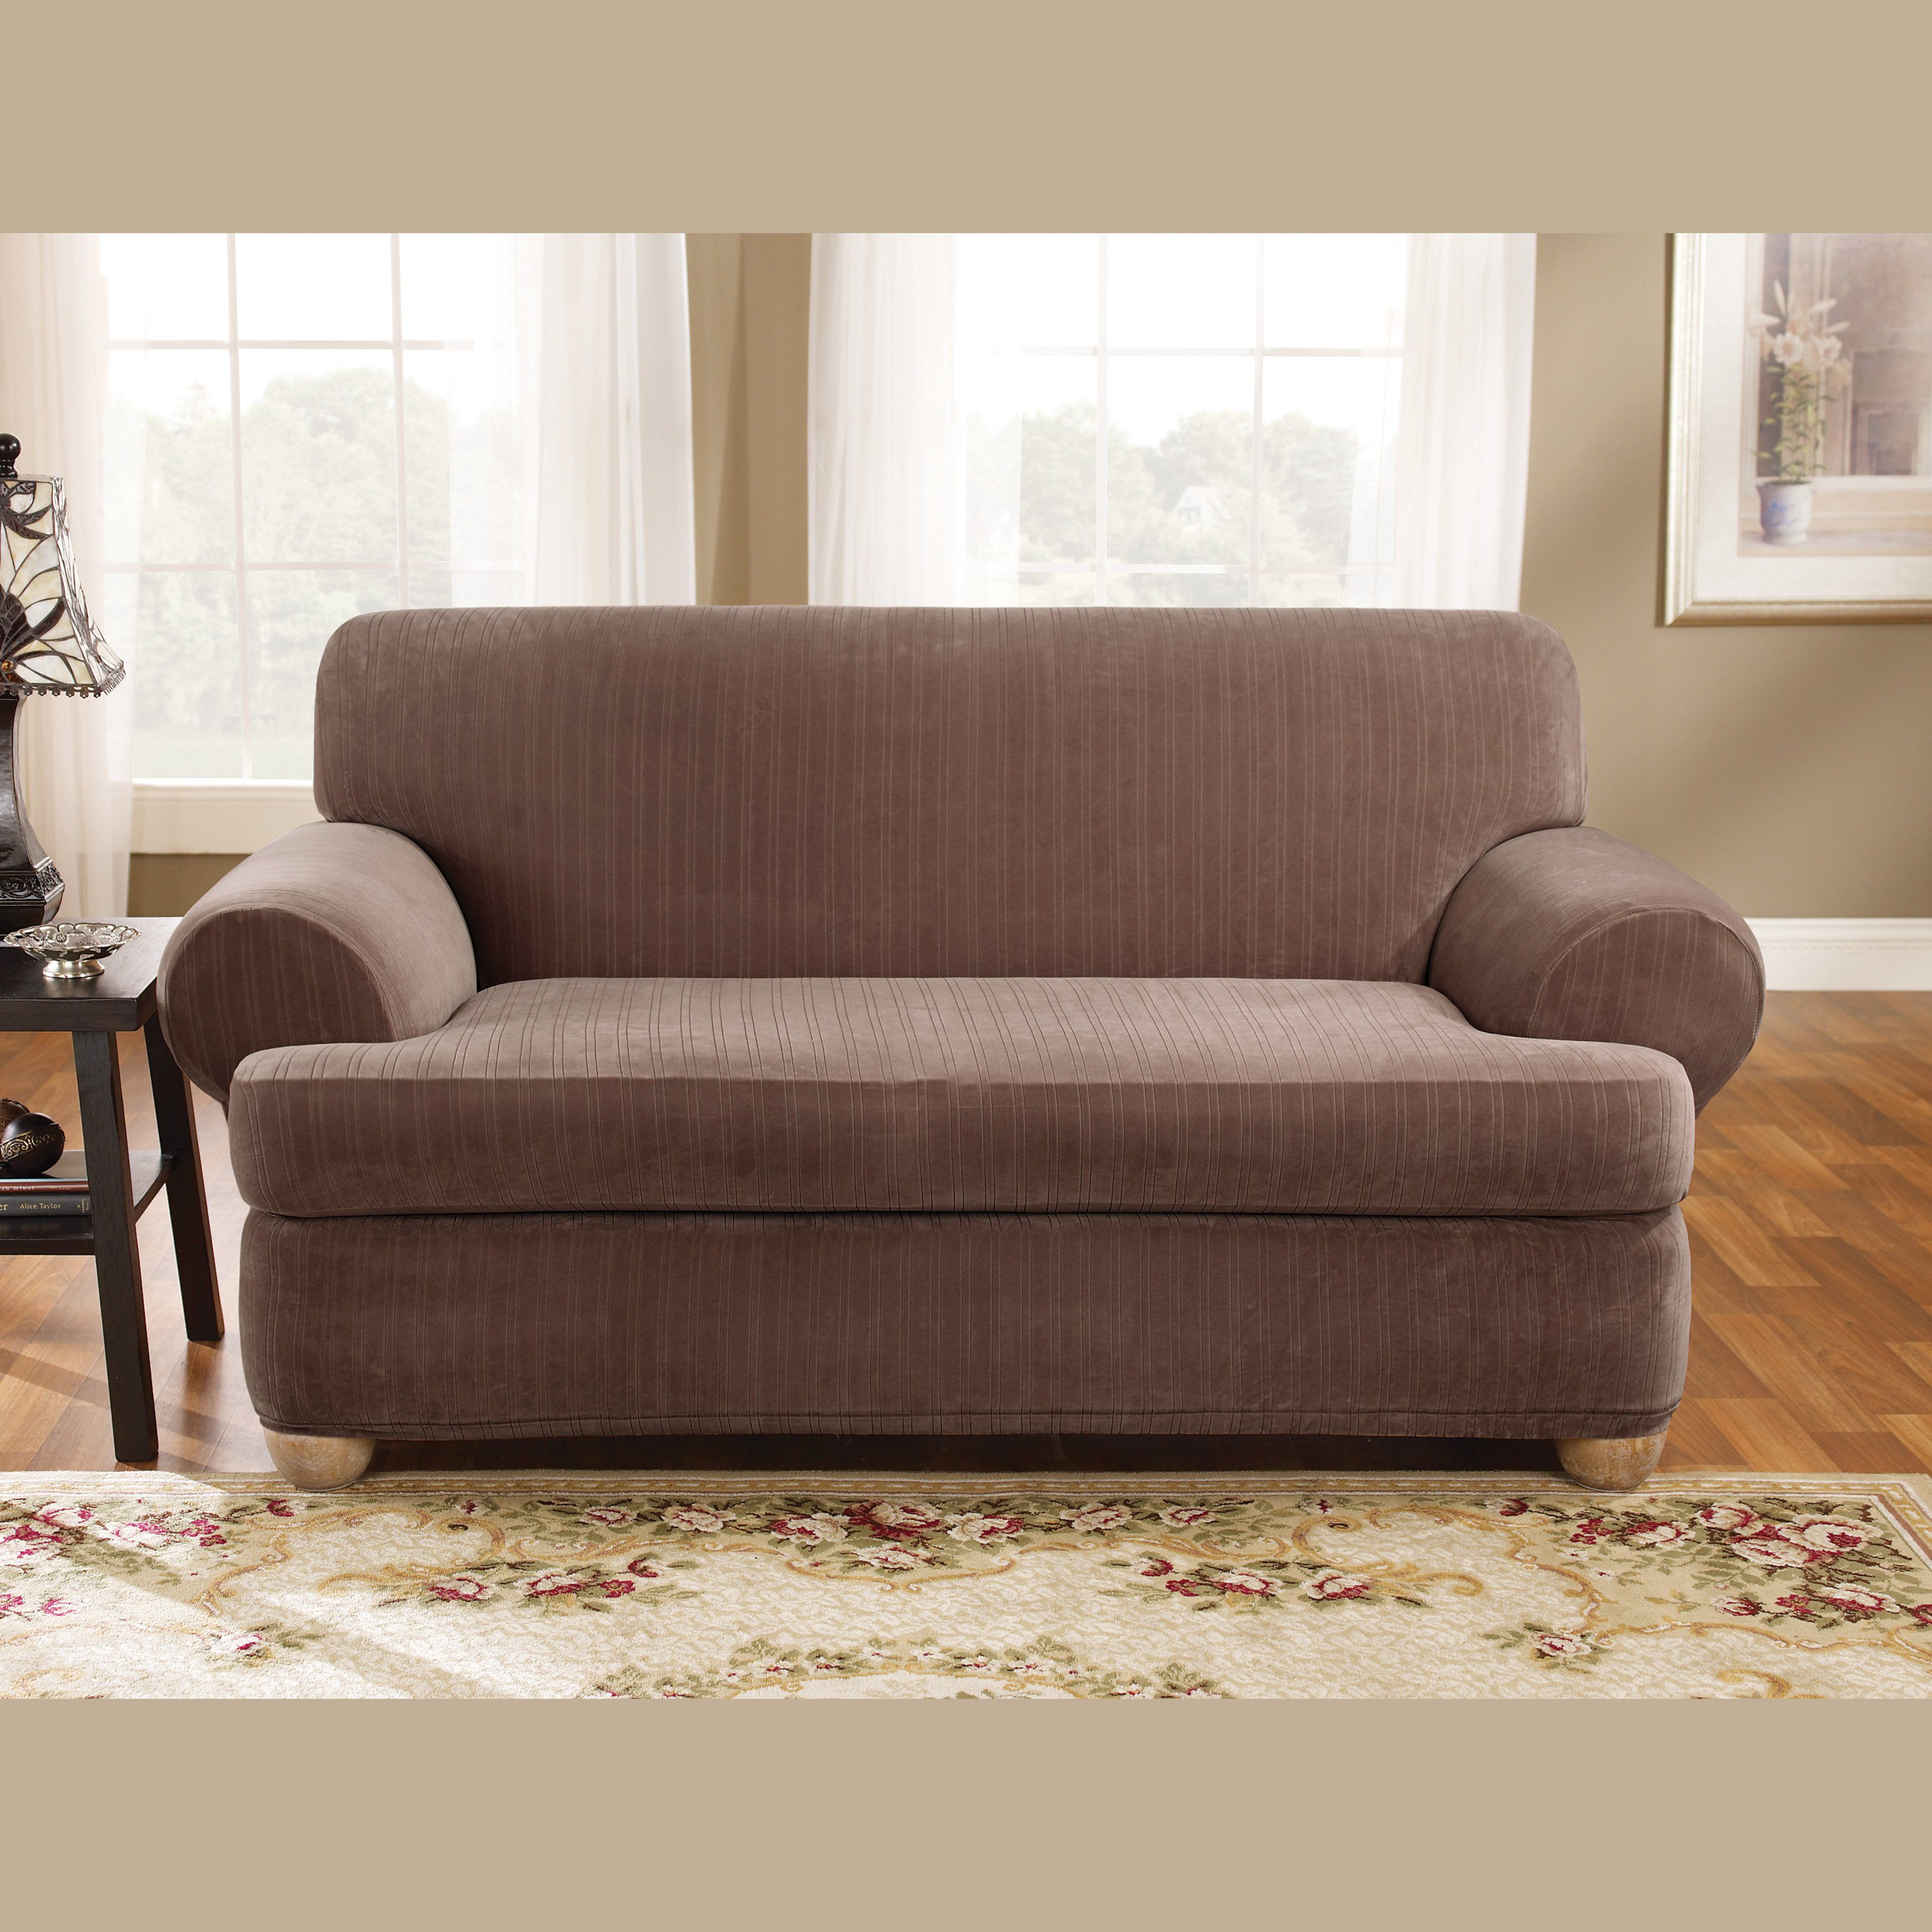 Slipcovers for loveseat ideas homesfeed Loveseat slipcover